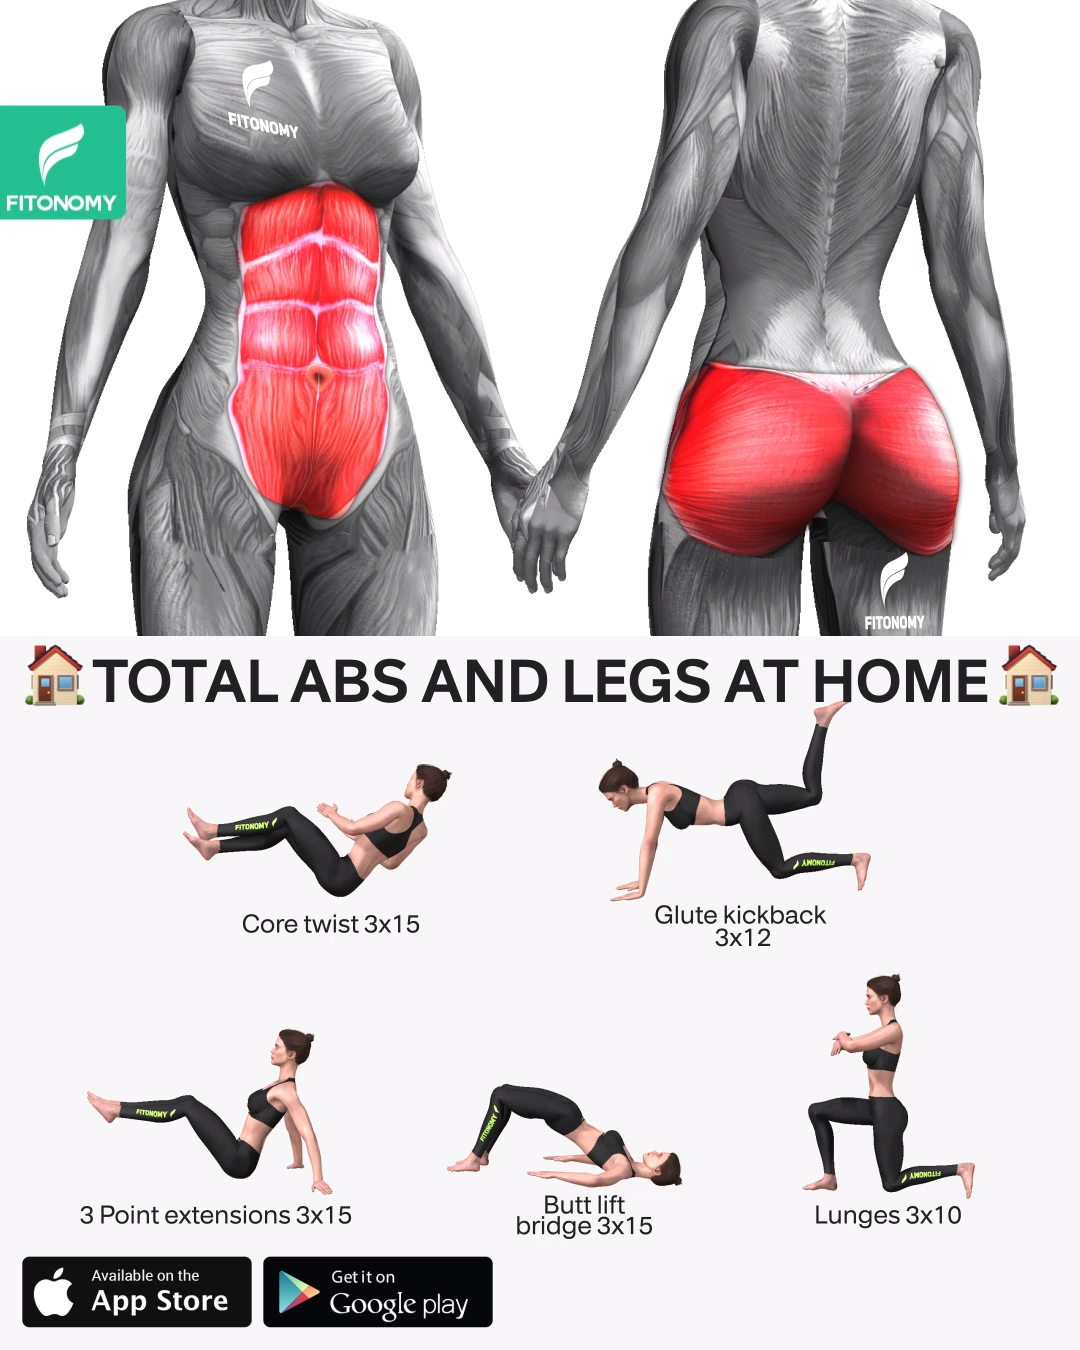 TOTAL ABS AND LEGS AT HOME